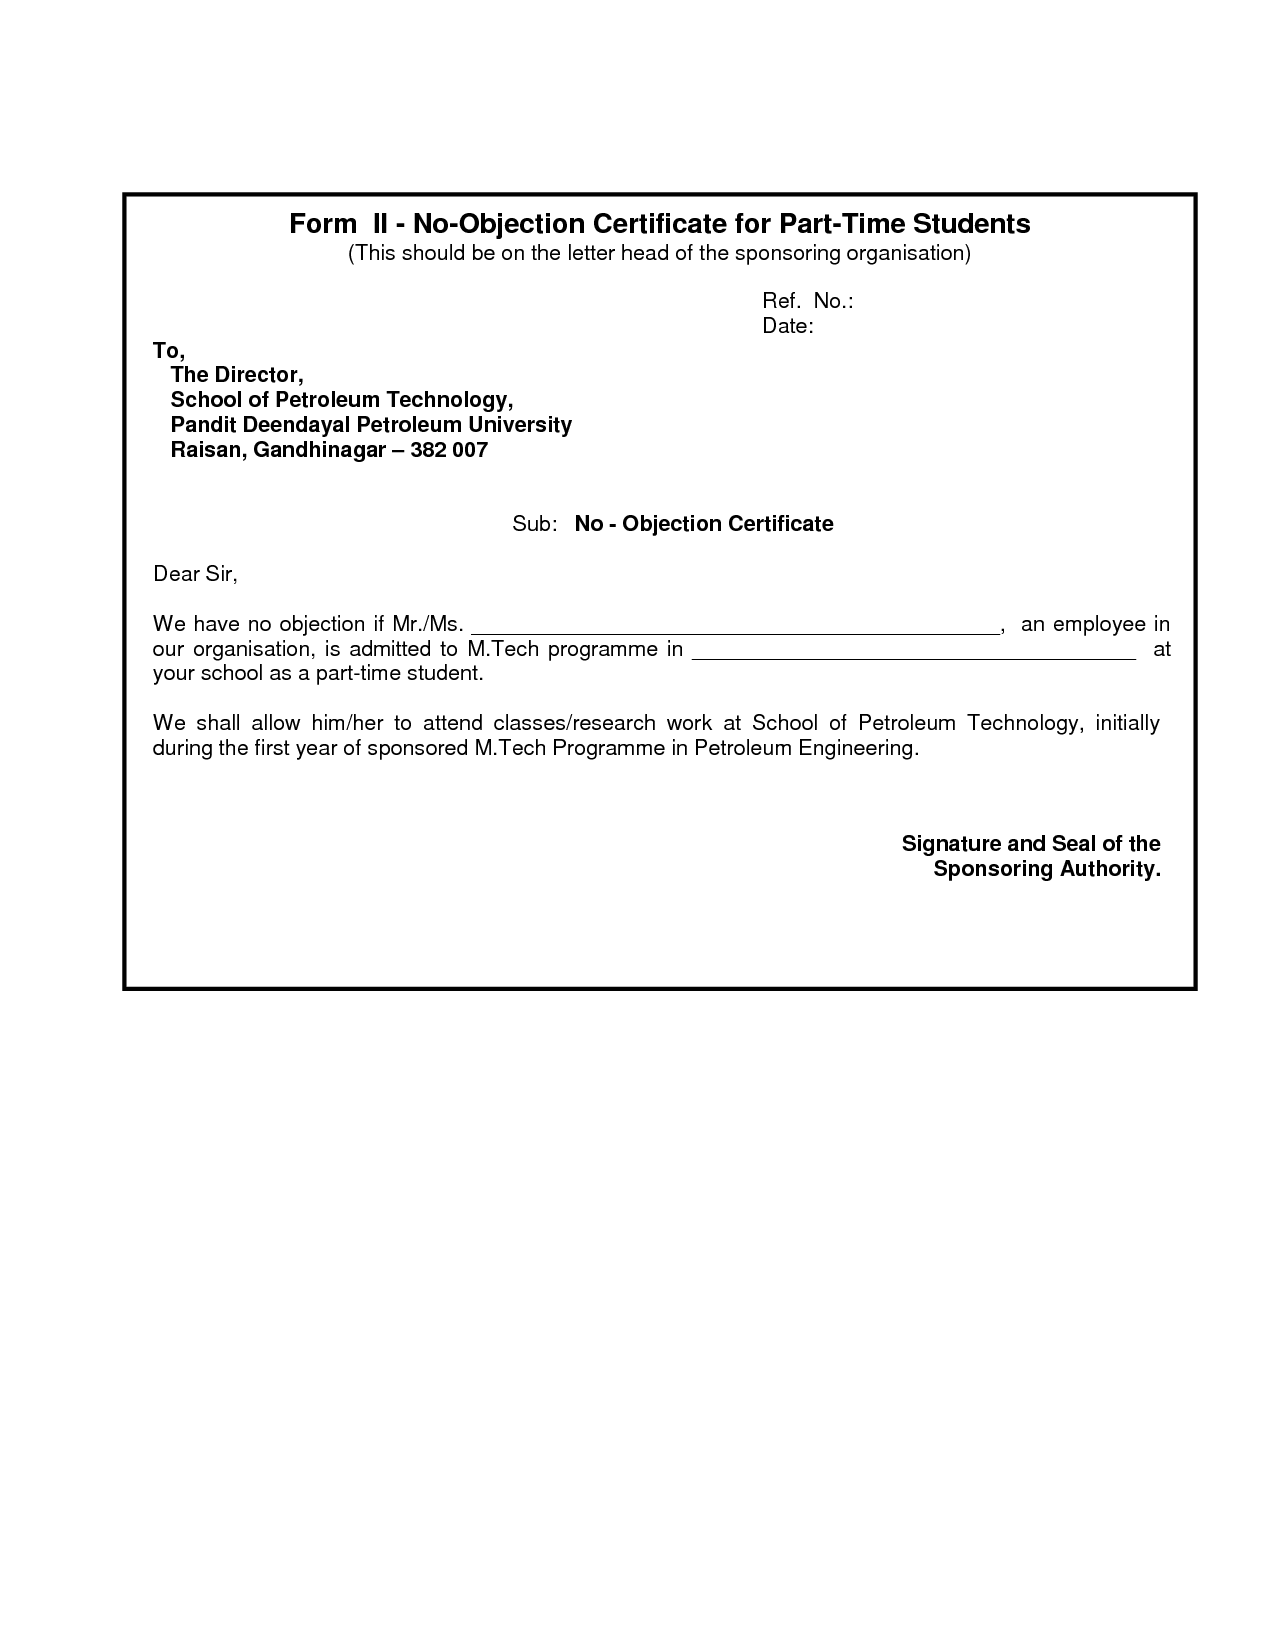 Doc7281032 Format of No Objection Certificate for Passport – Non Objection Certificate Format